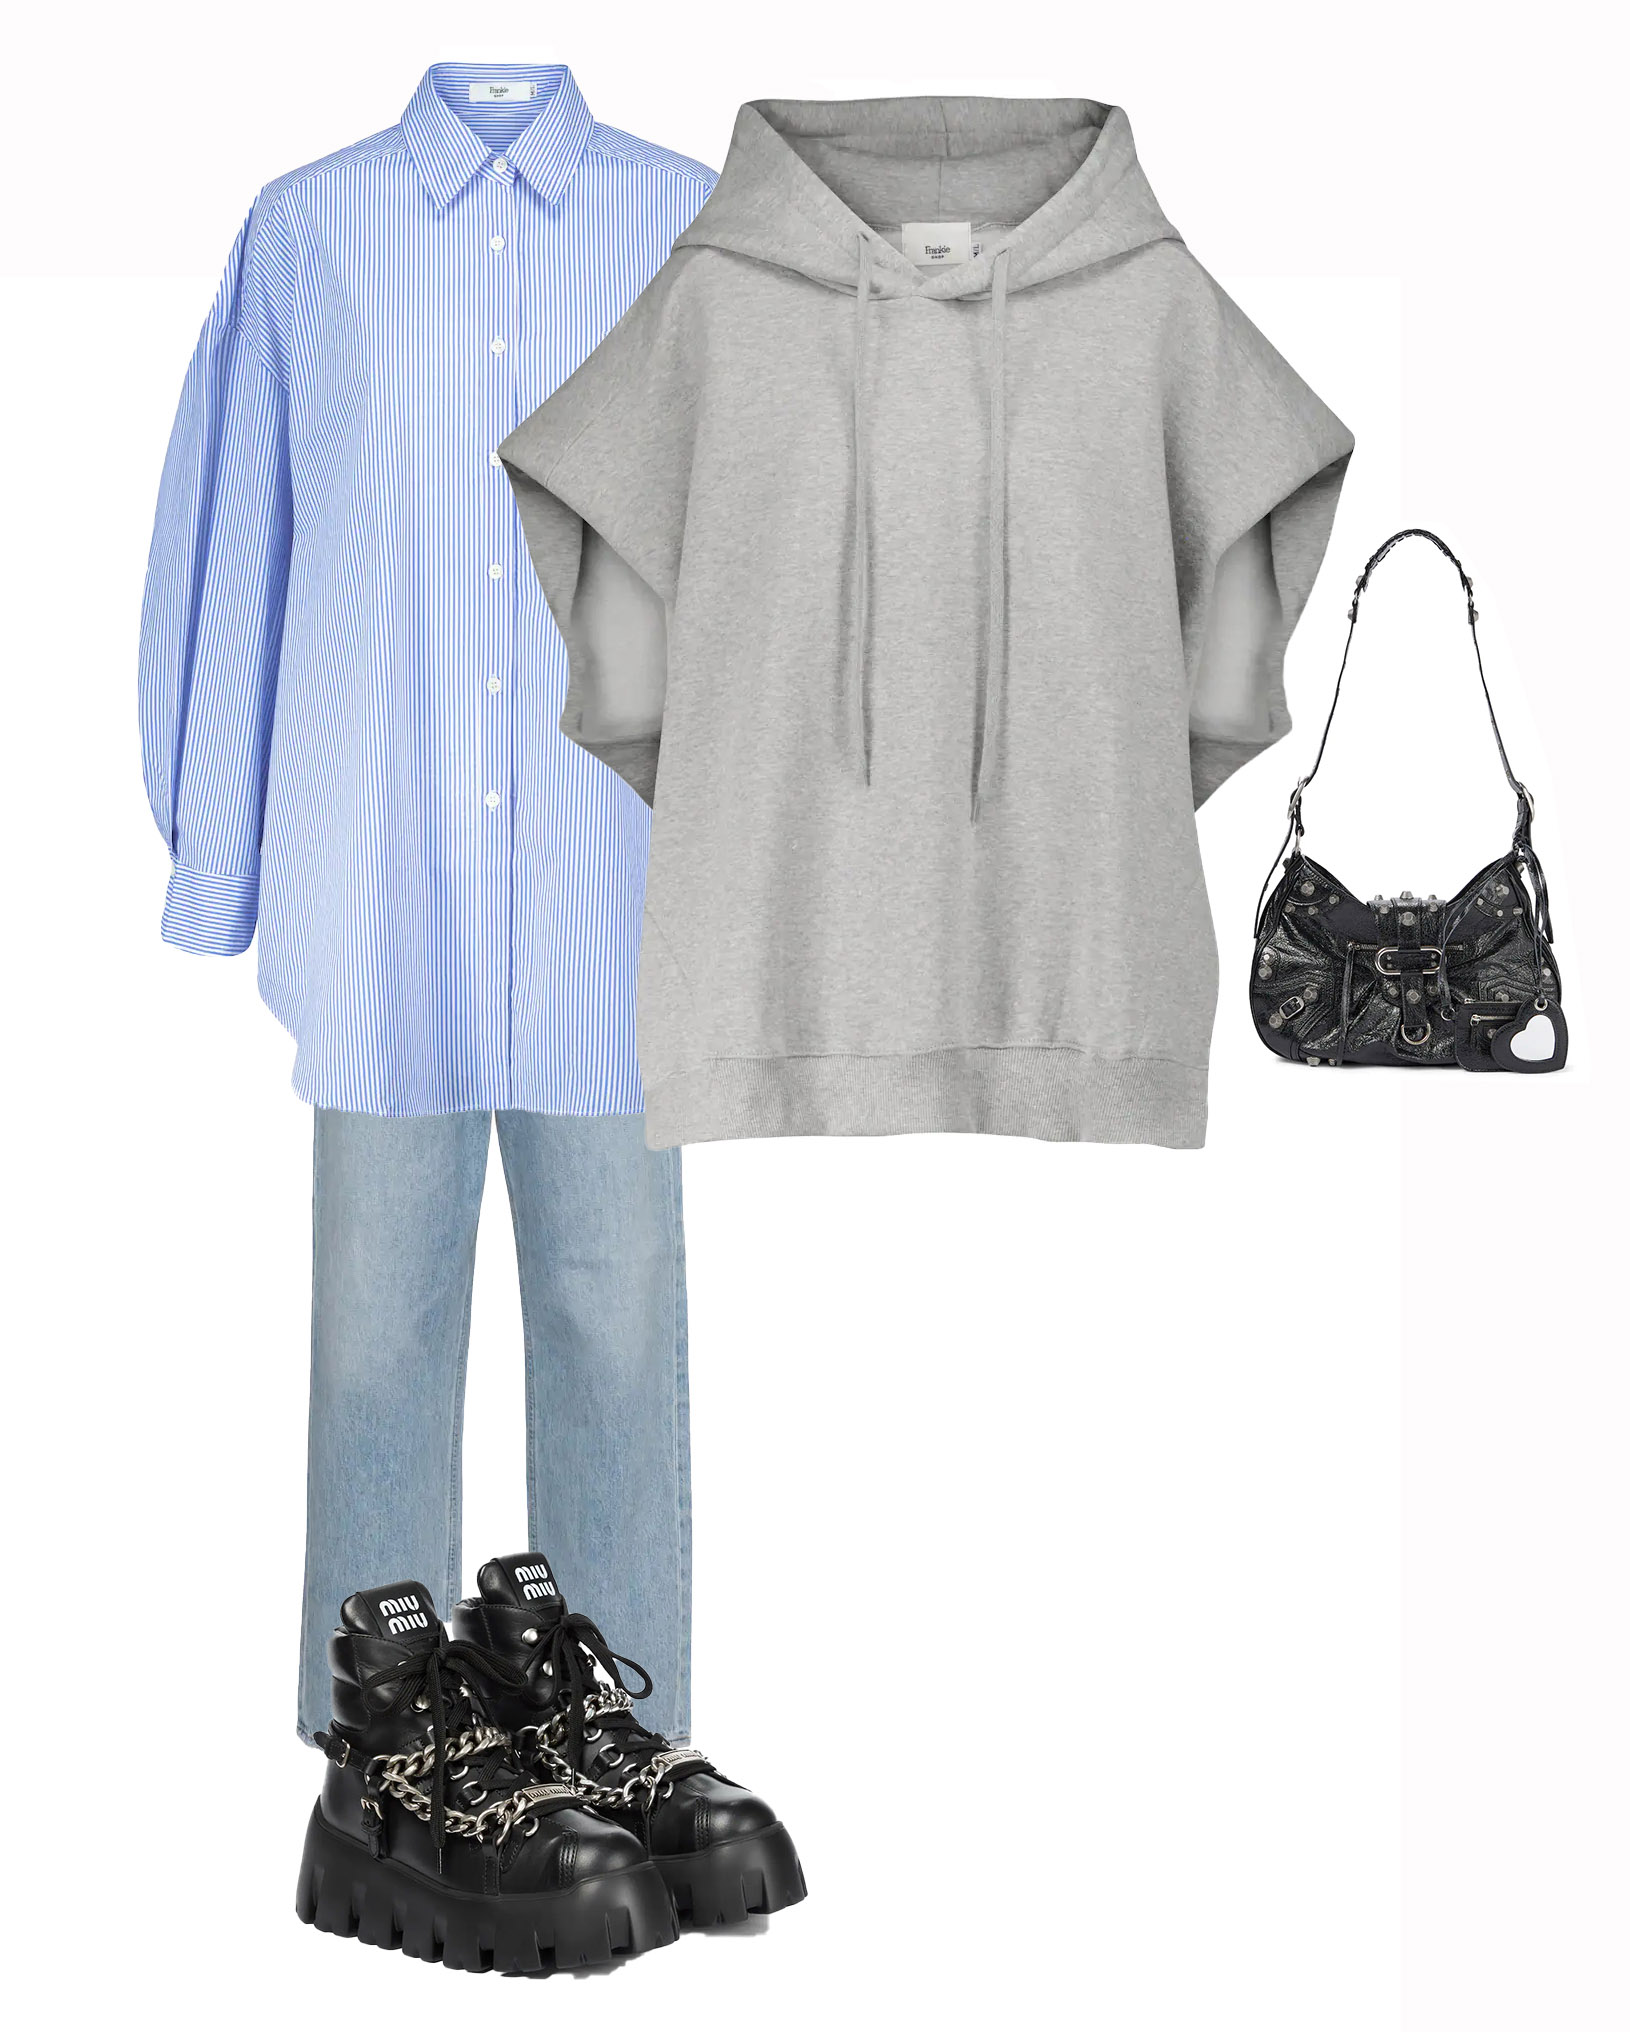 miu-miu-leather-booties-metal-chain-oversized-rubber-sole-outfit